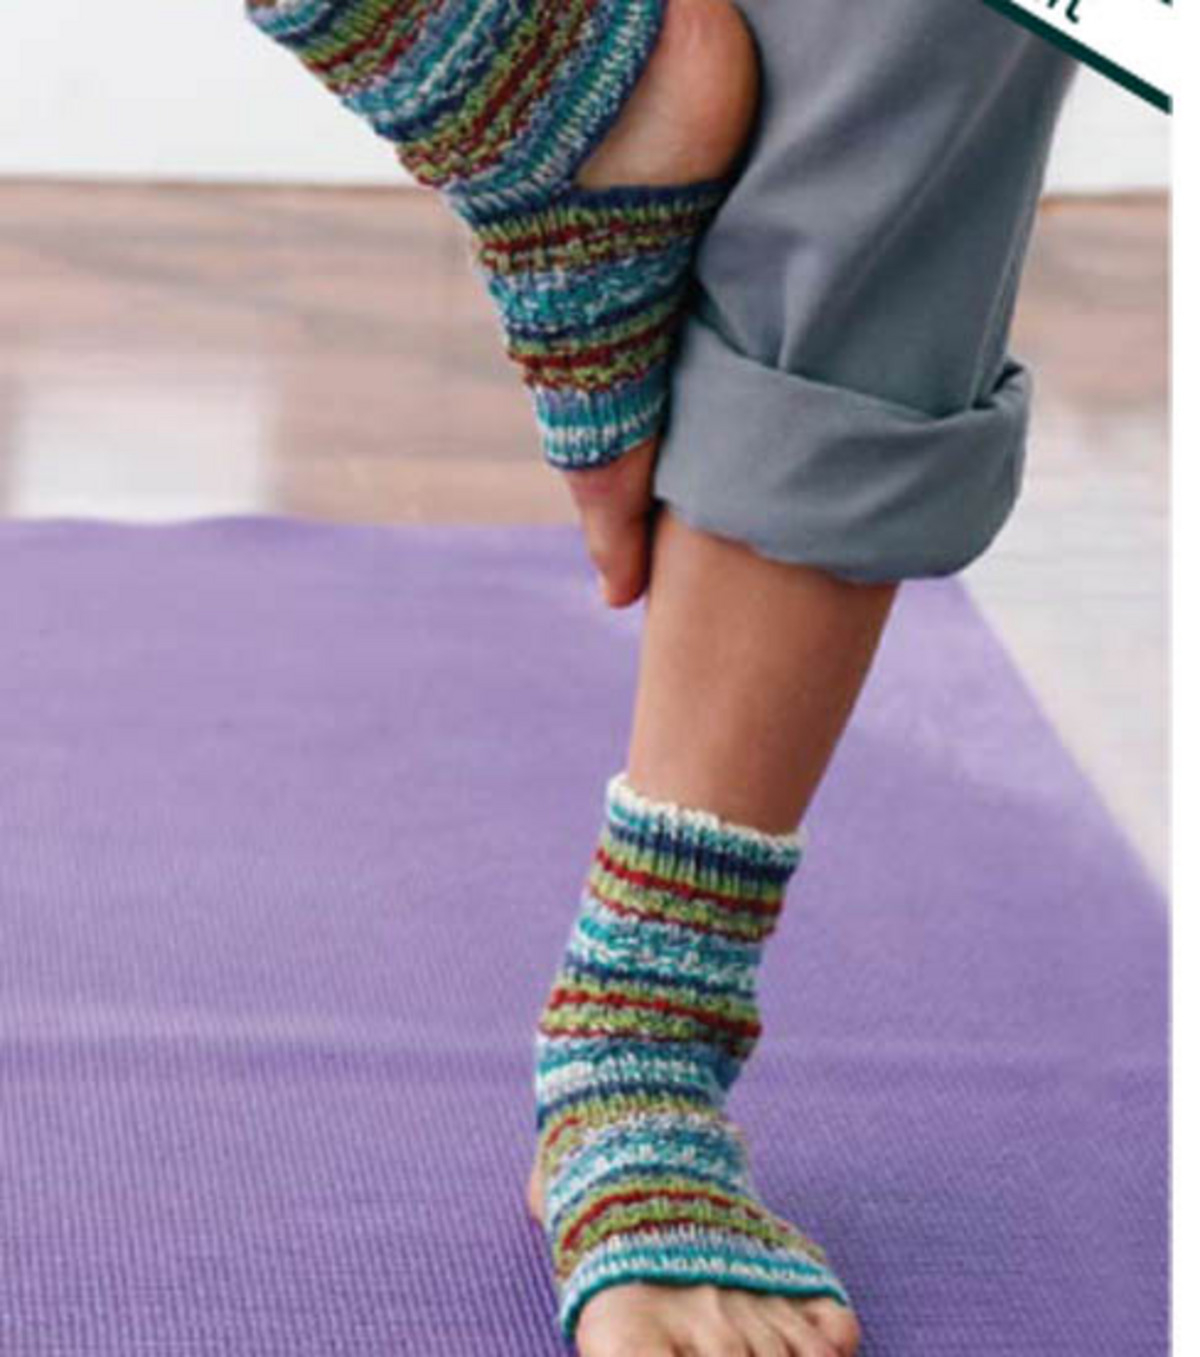 Knitting Pattern For Yoga Socks Knit A Pair Of Yoga Socks Free Knitting Pattern